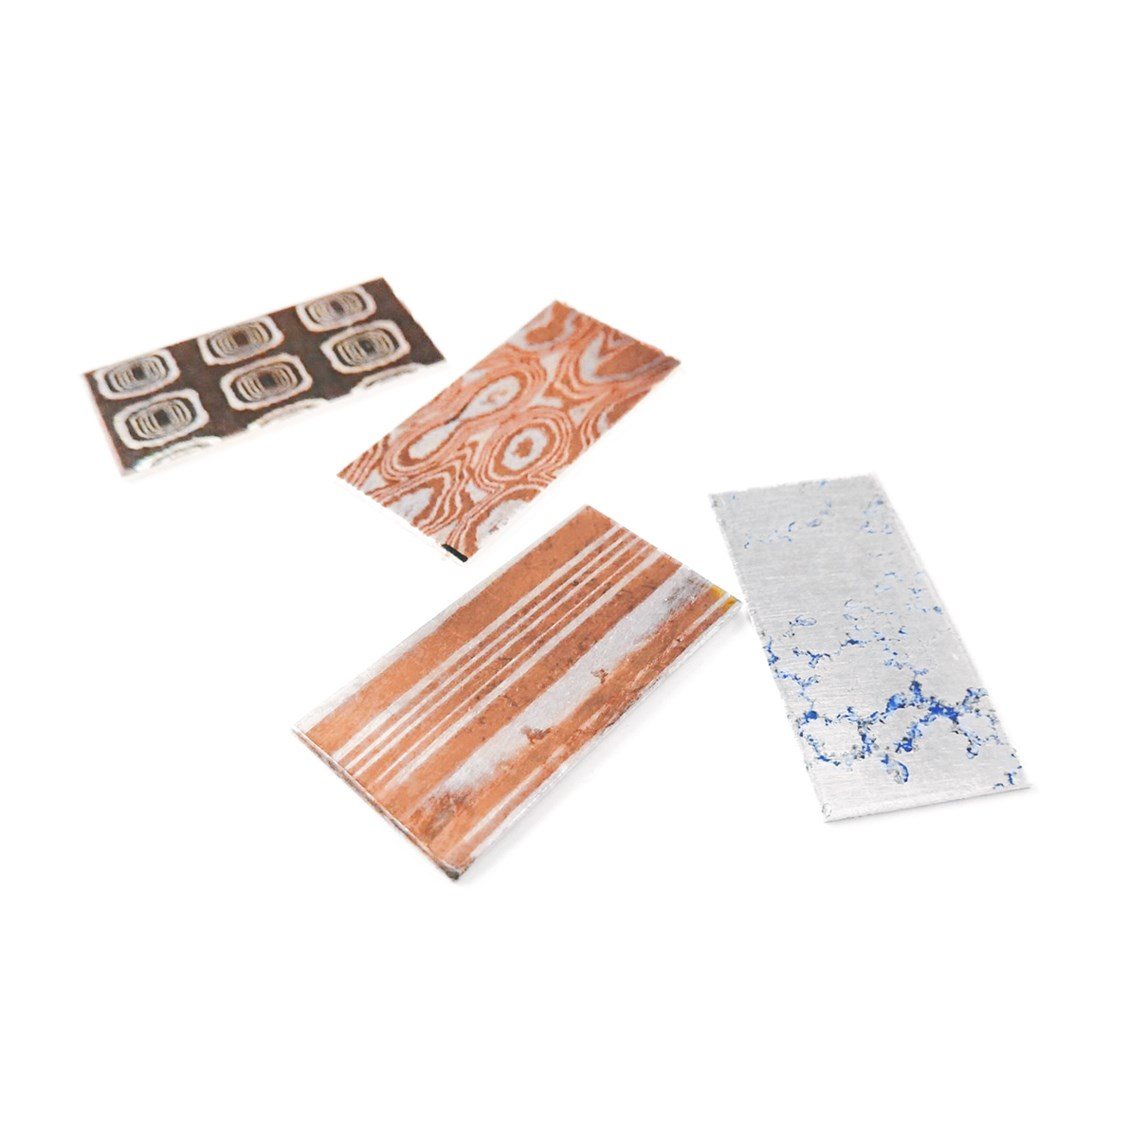 Assorted Specialist Metal Pack Of Mokume Gane And Crinkle